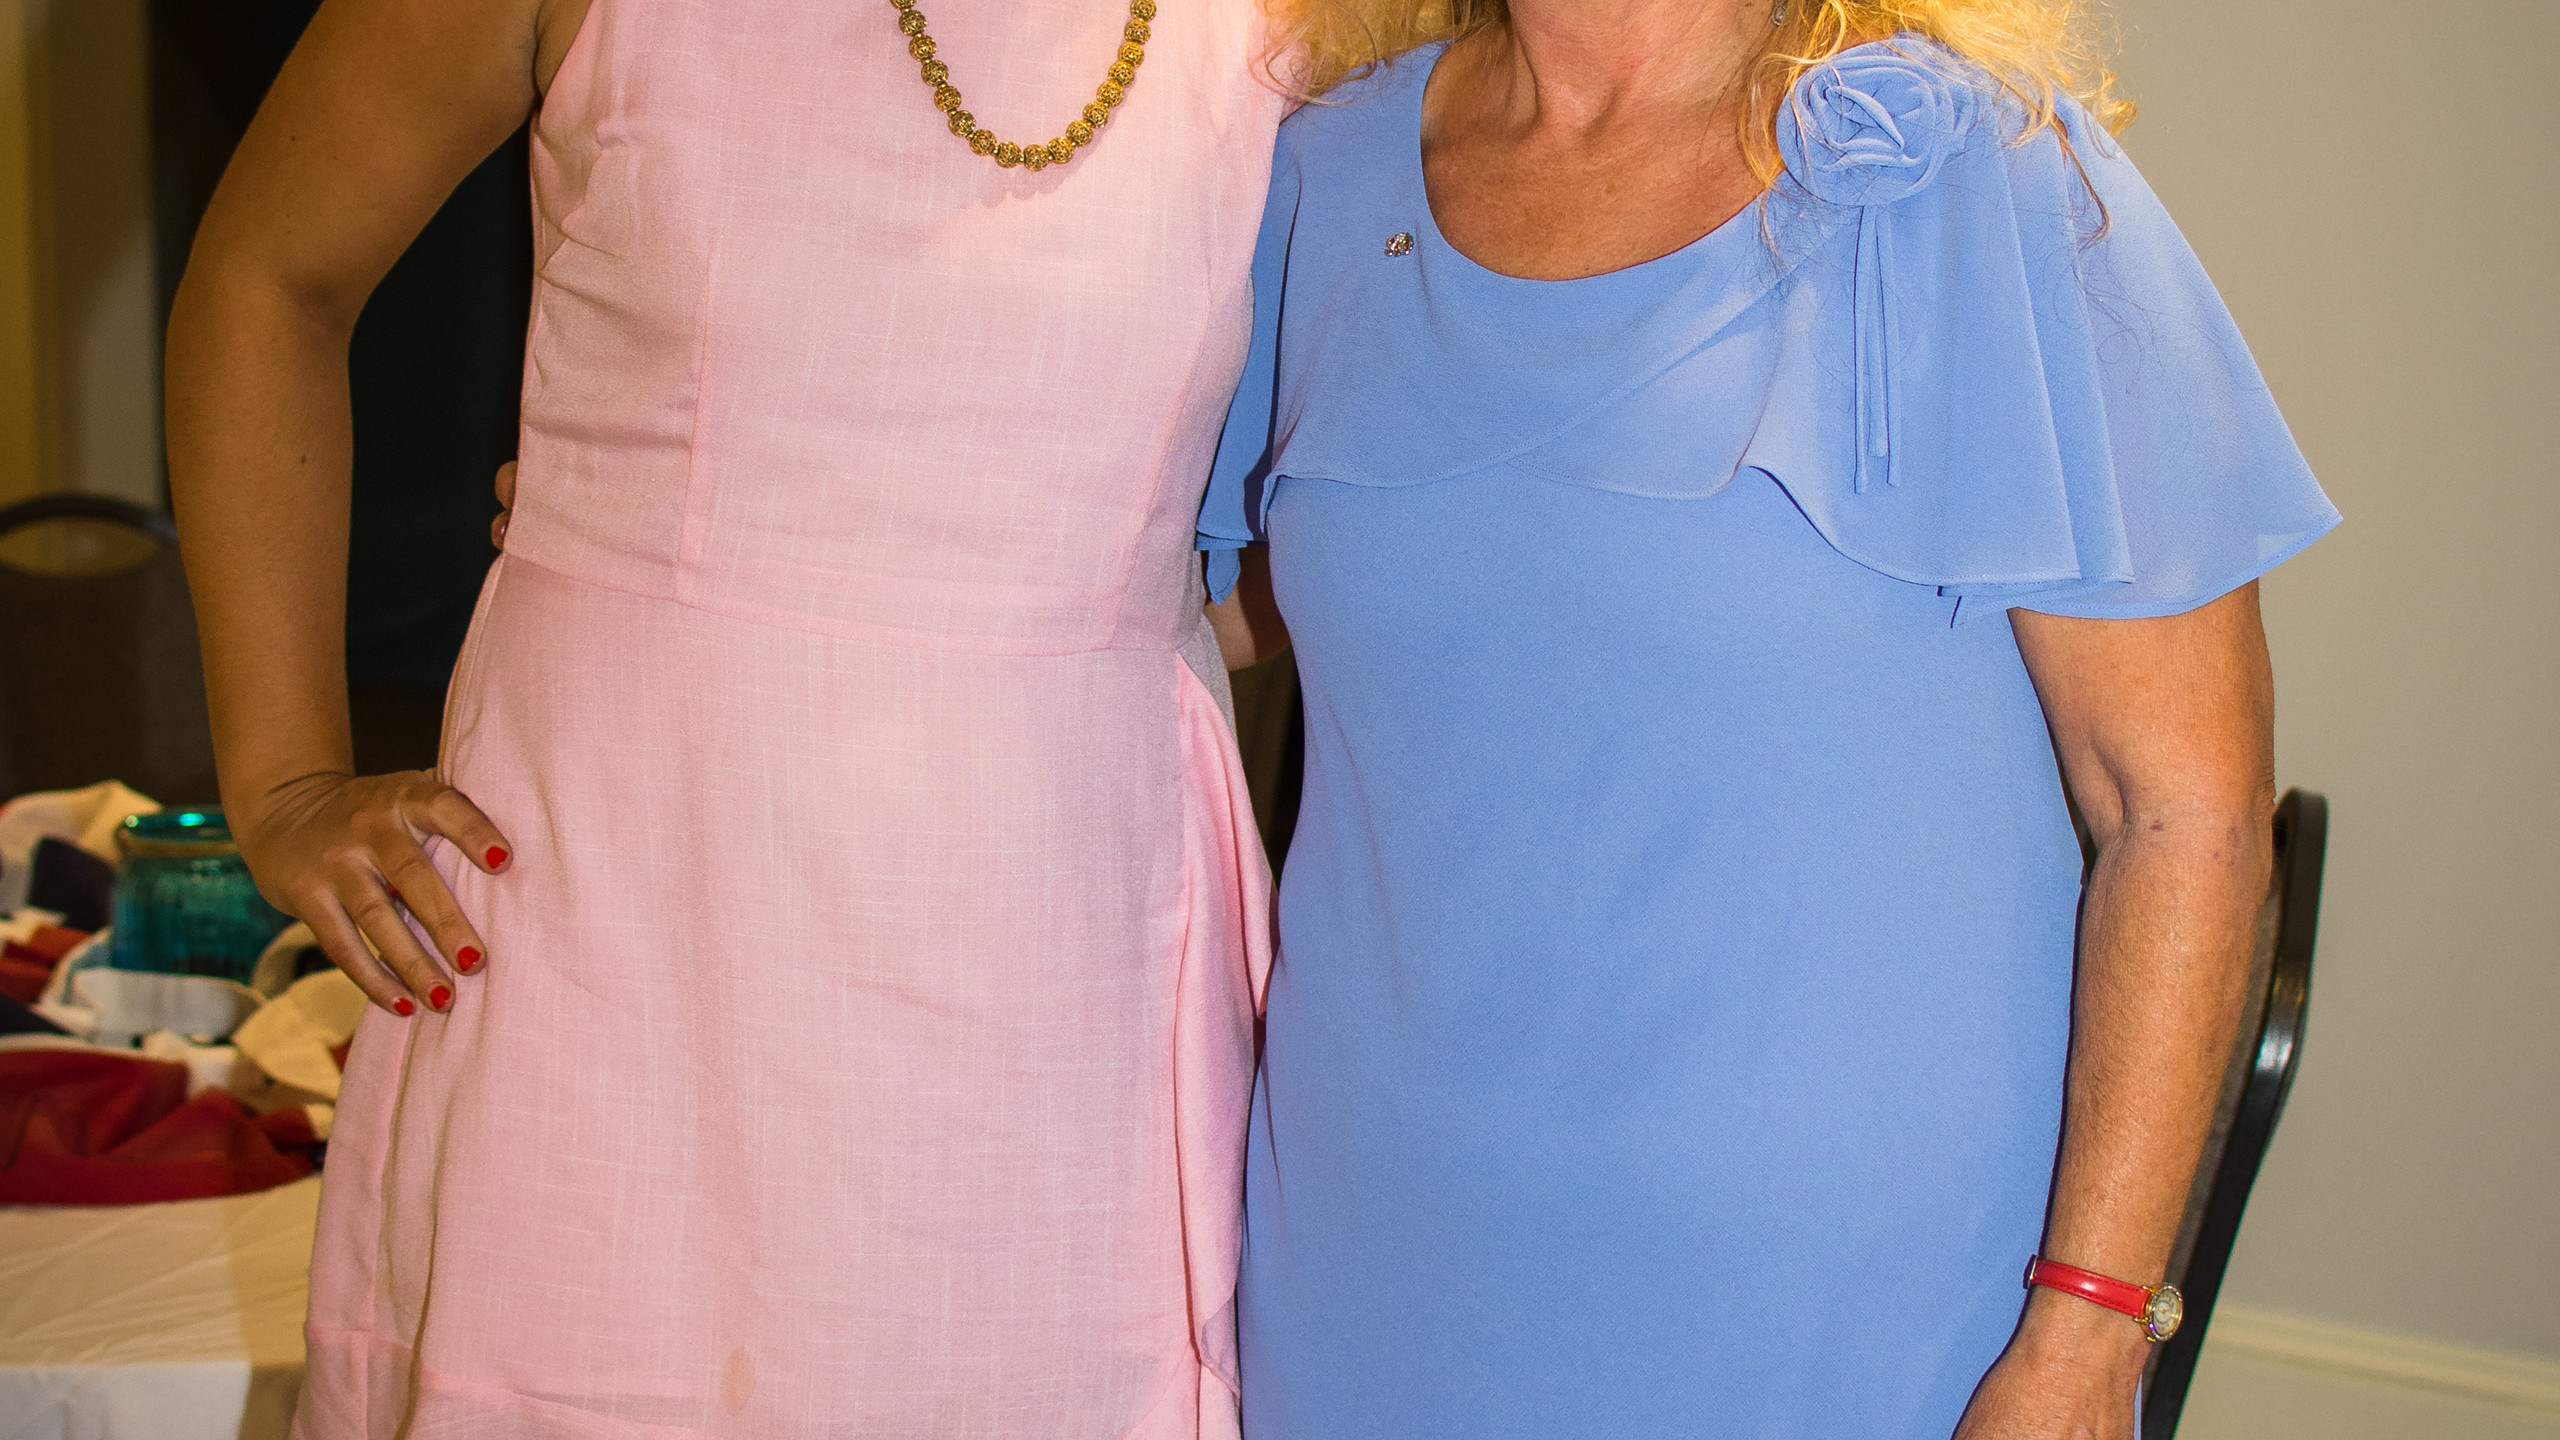 Laine Arnold and Cathy Kolb